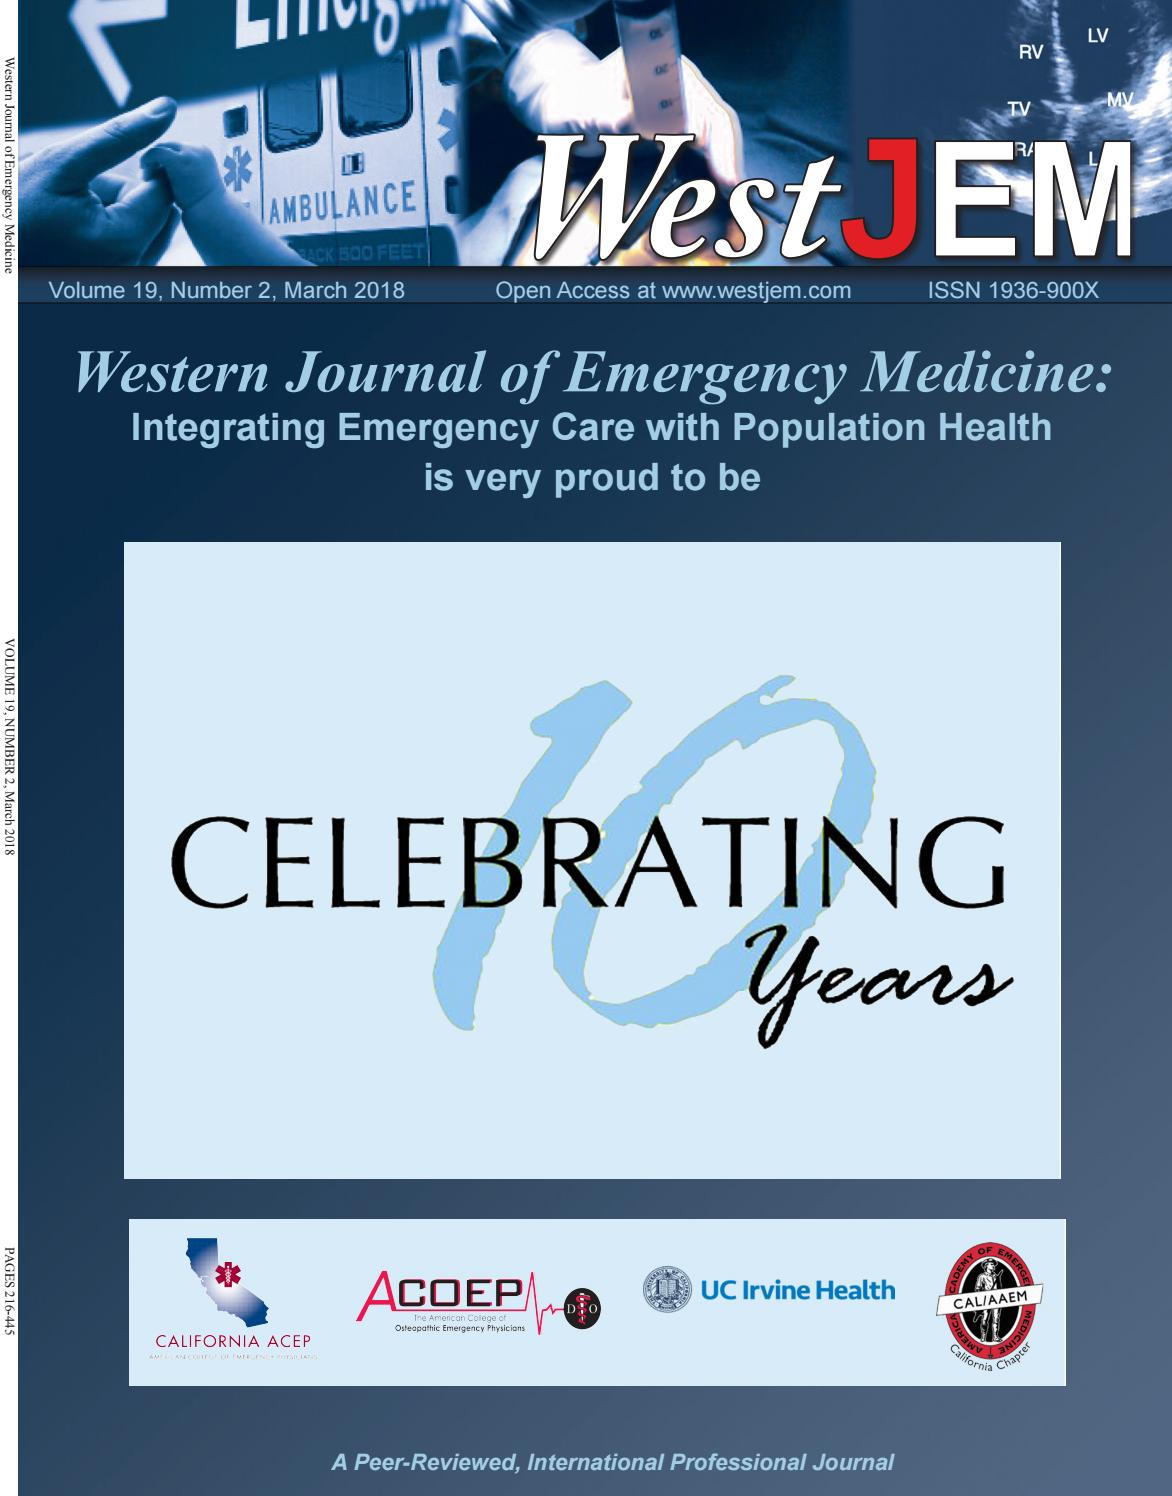 Volume 19 Issue 2 by Western Journal of Emergency Medicine - issuu